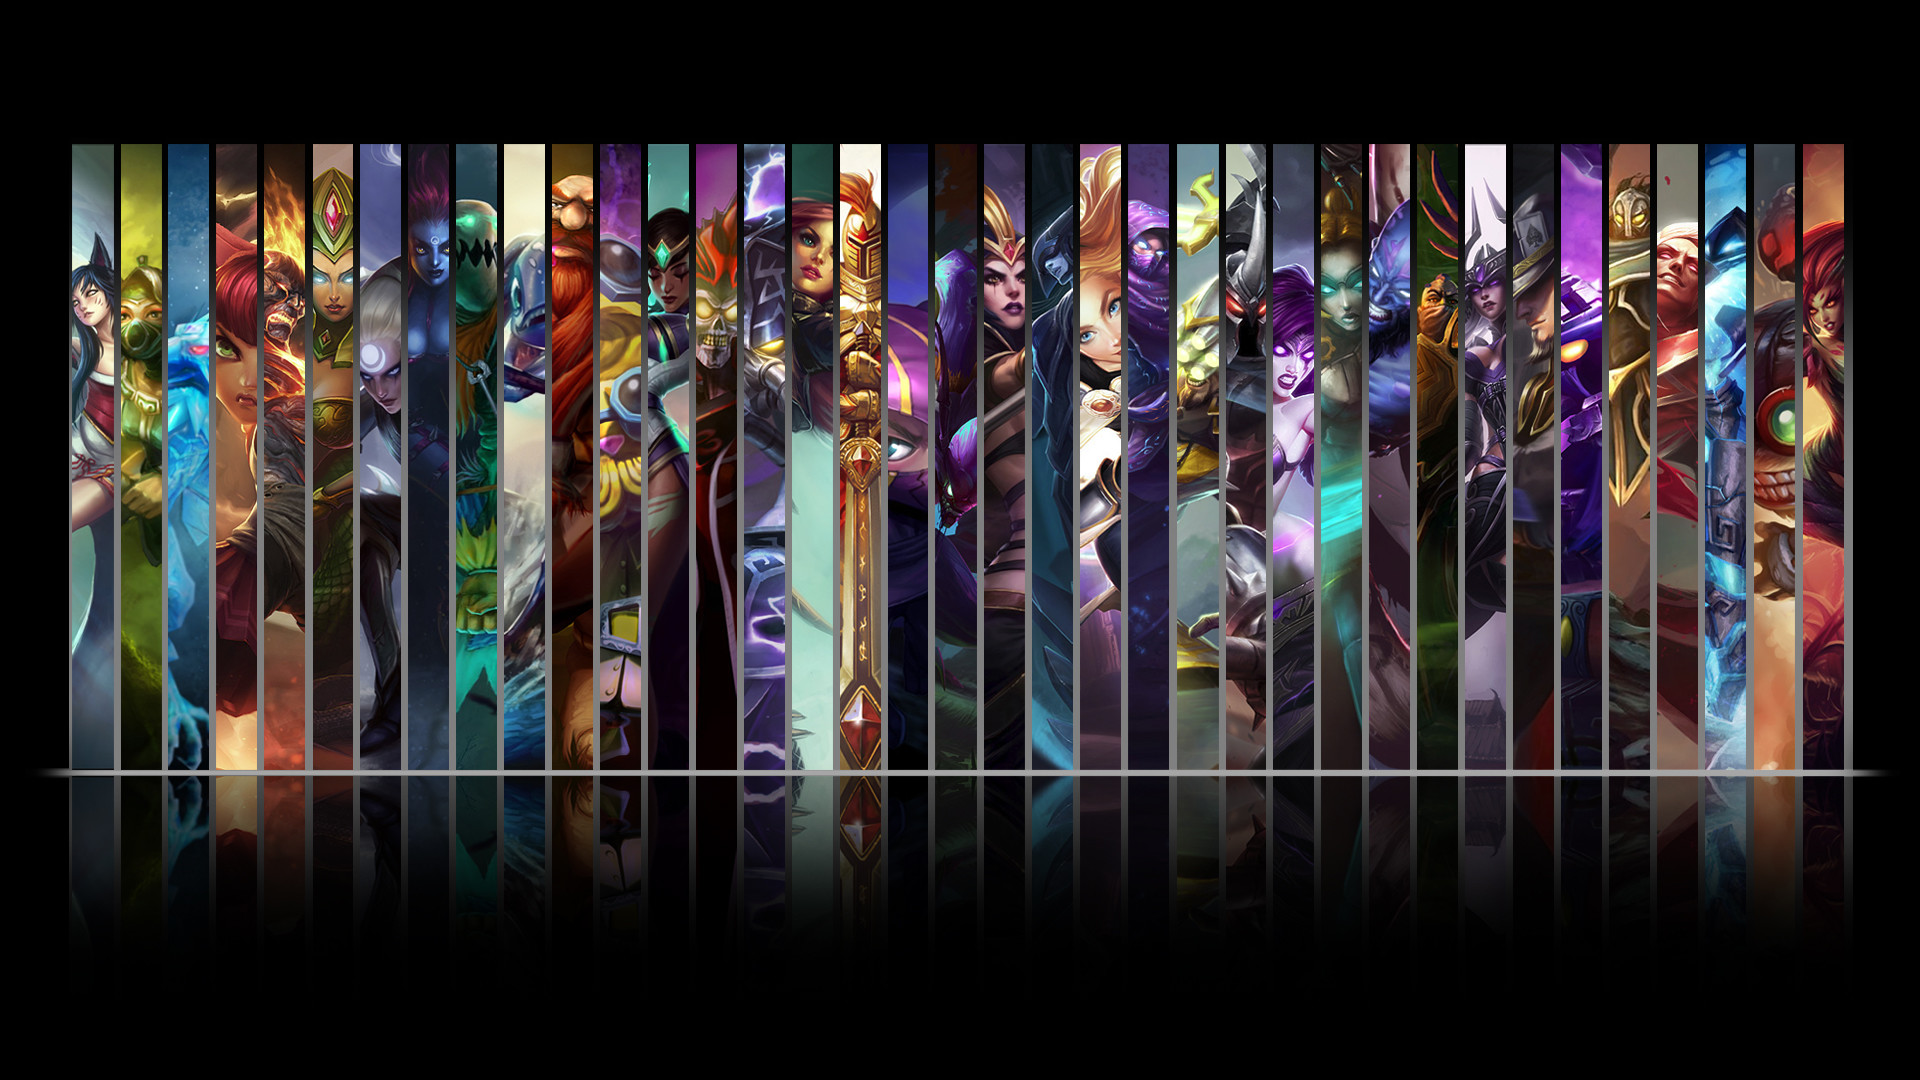 League of Legends Mid Wallpaper by NibblesMeKibbles League of Legends Mid  Wallpaper by NibblesMeKibbles